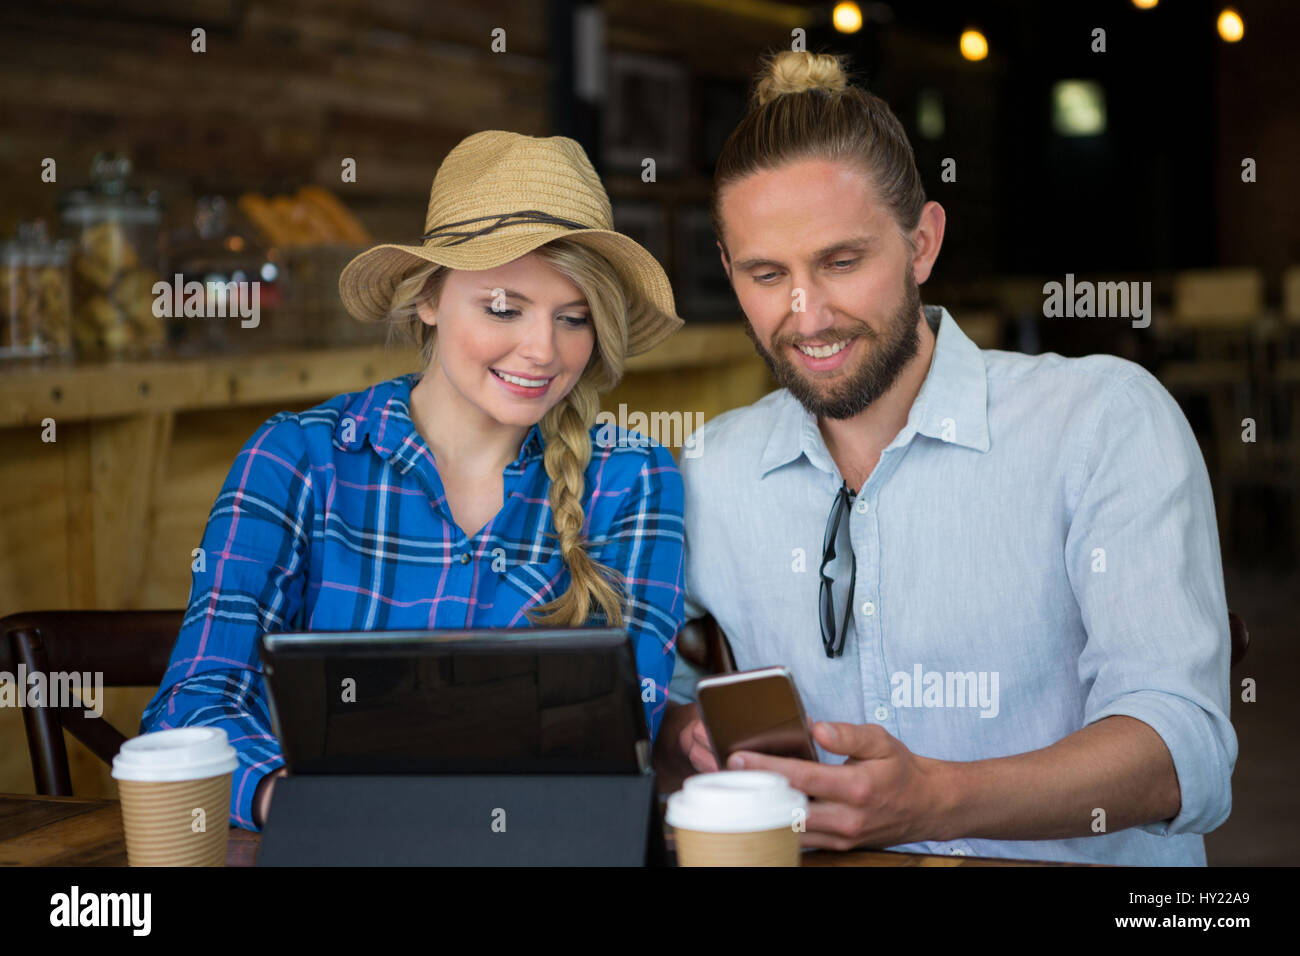 Smiling young couple using mobile phone at table in cafe Stock Photo